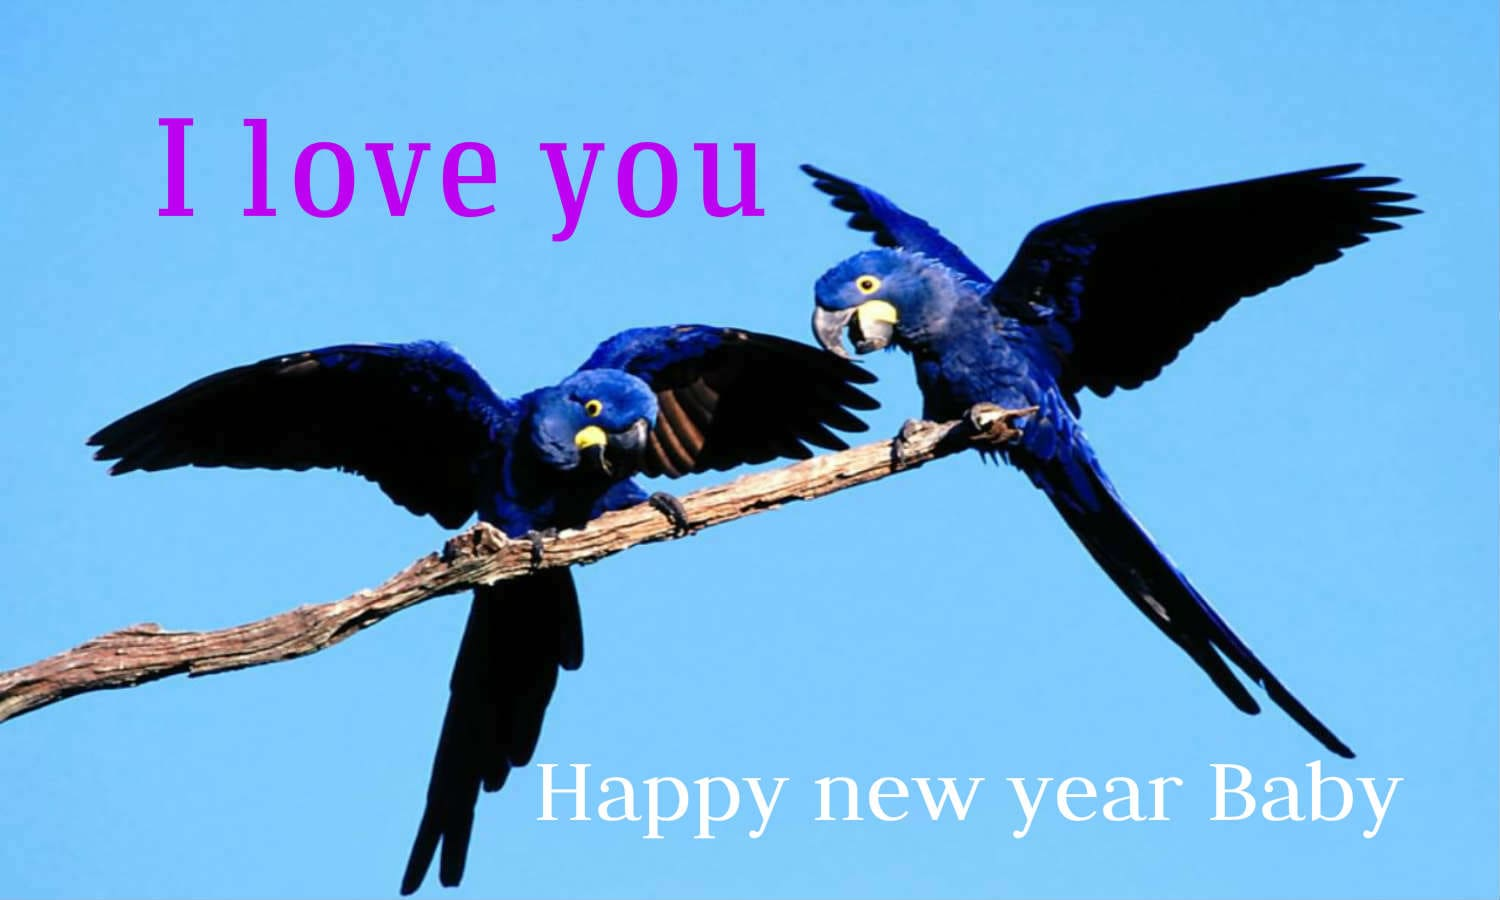 Lovely couple bird happy new year 2016 pictures images wallpaper free download